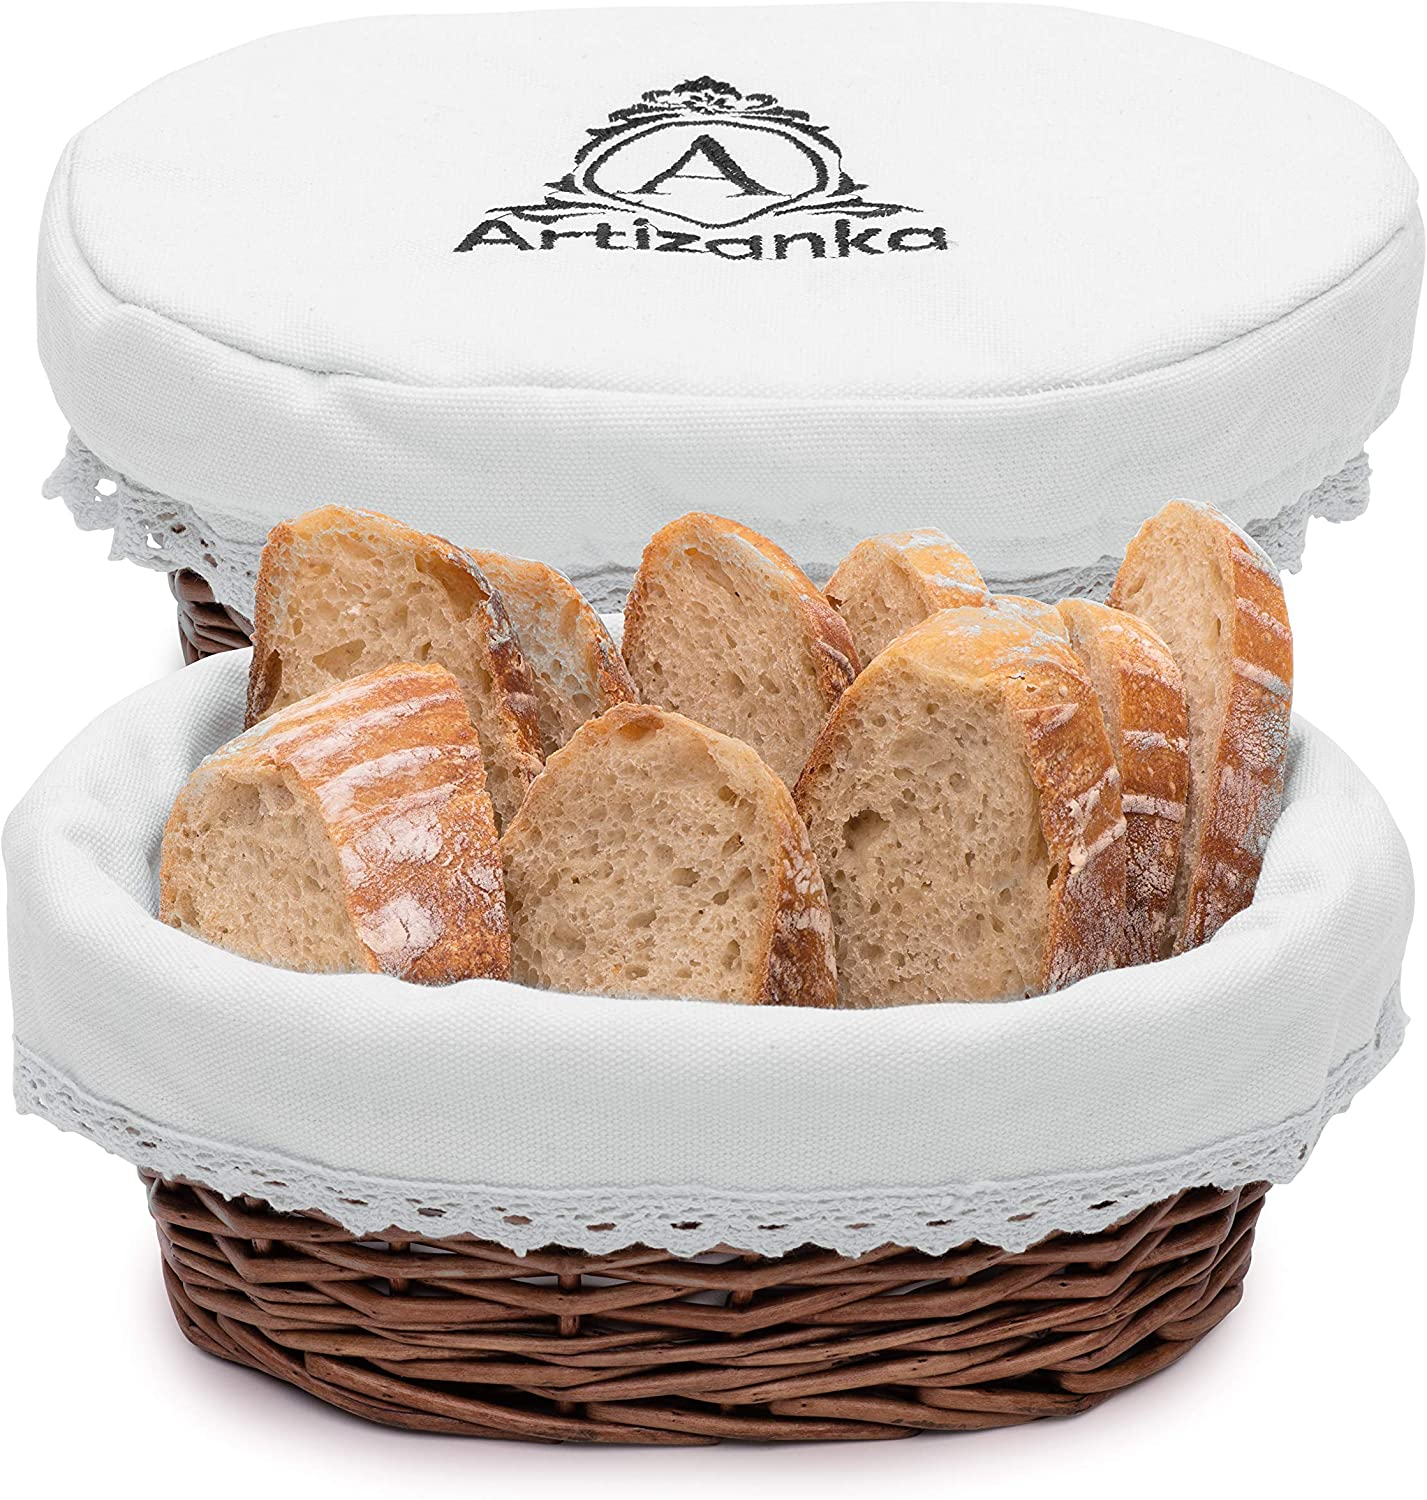 """Artizanka Bread Basket for Serving Set - 11"""" Wicker Basket with Removable Liner and Cover, Bread Basket Warmer and Bread Serving Basket for Homemade Sourdough Bread or Rolls. Fruit and Pantry Basket."""